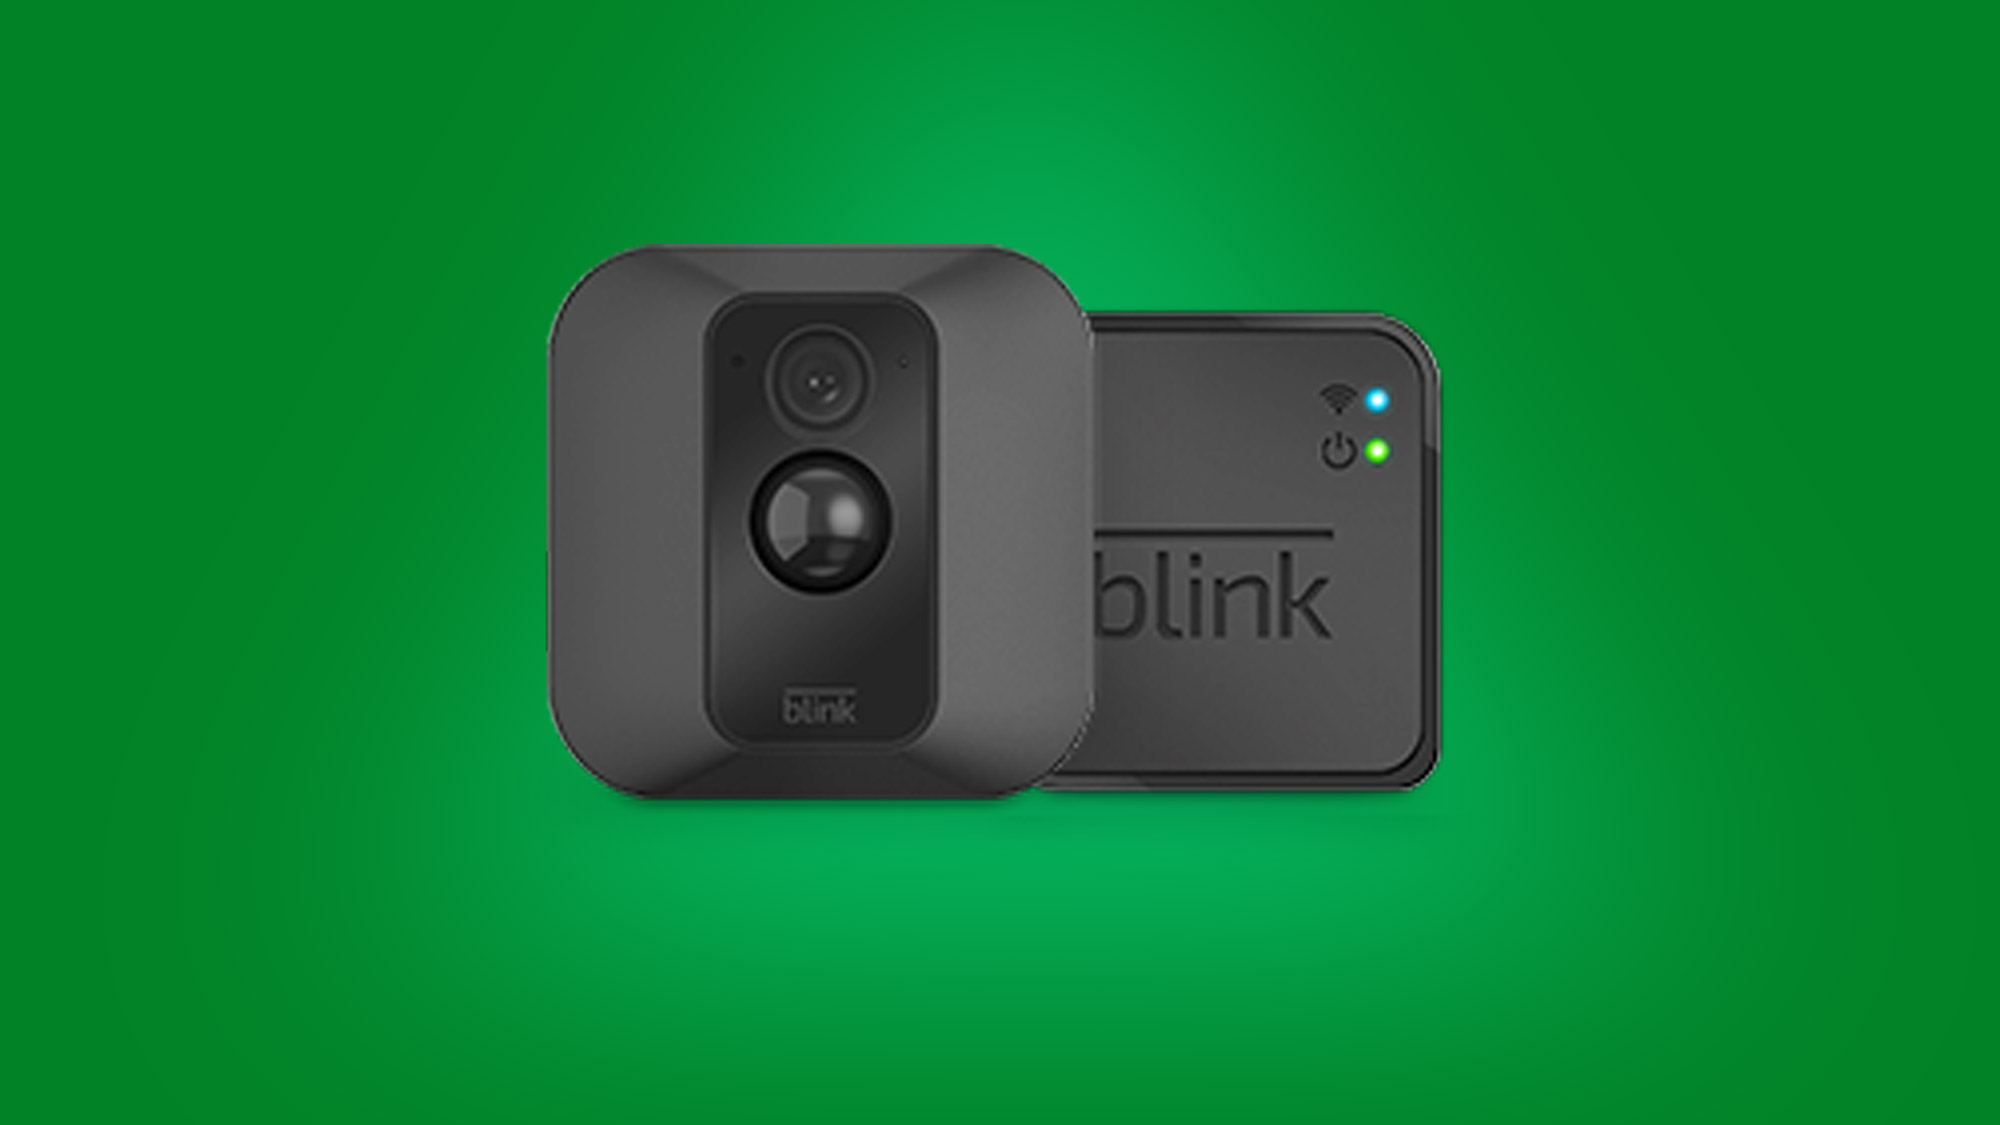 Blink Home Security Camera System With Motion Detection Hd Video US SELLER New